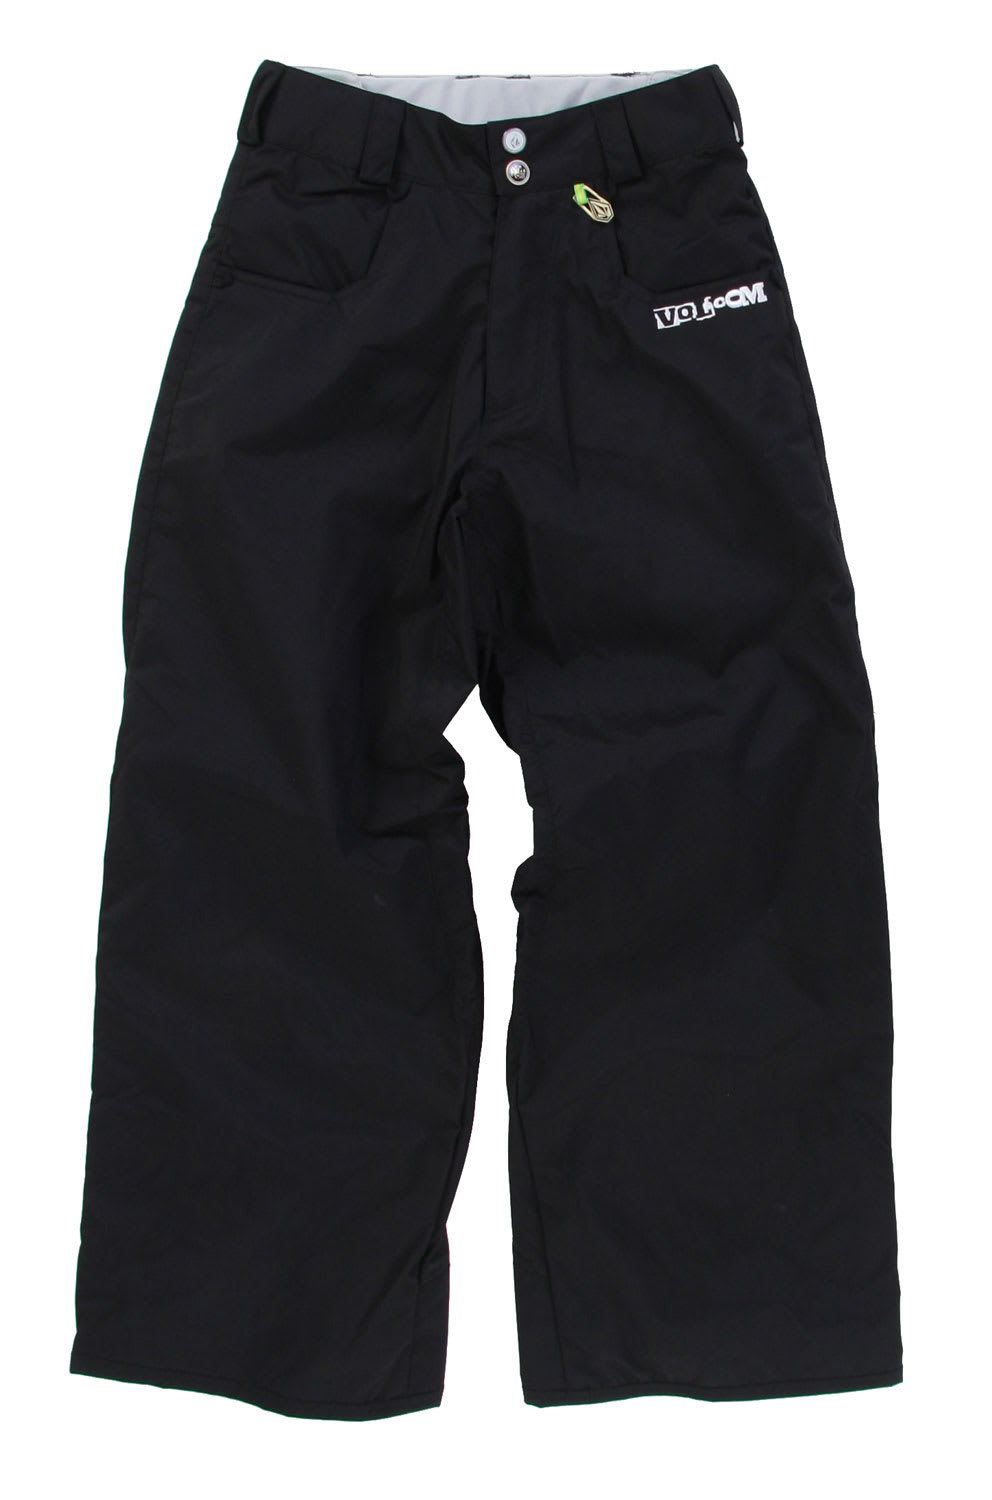 Shop for Volcom Five Snowboard Pants Black - Kid's